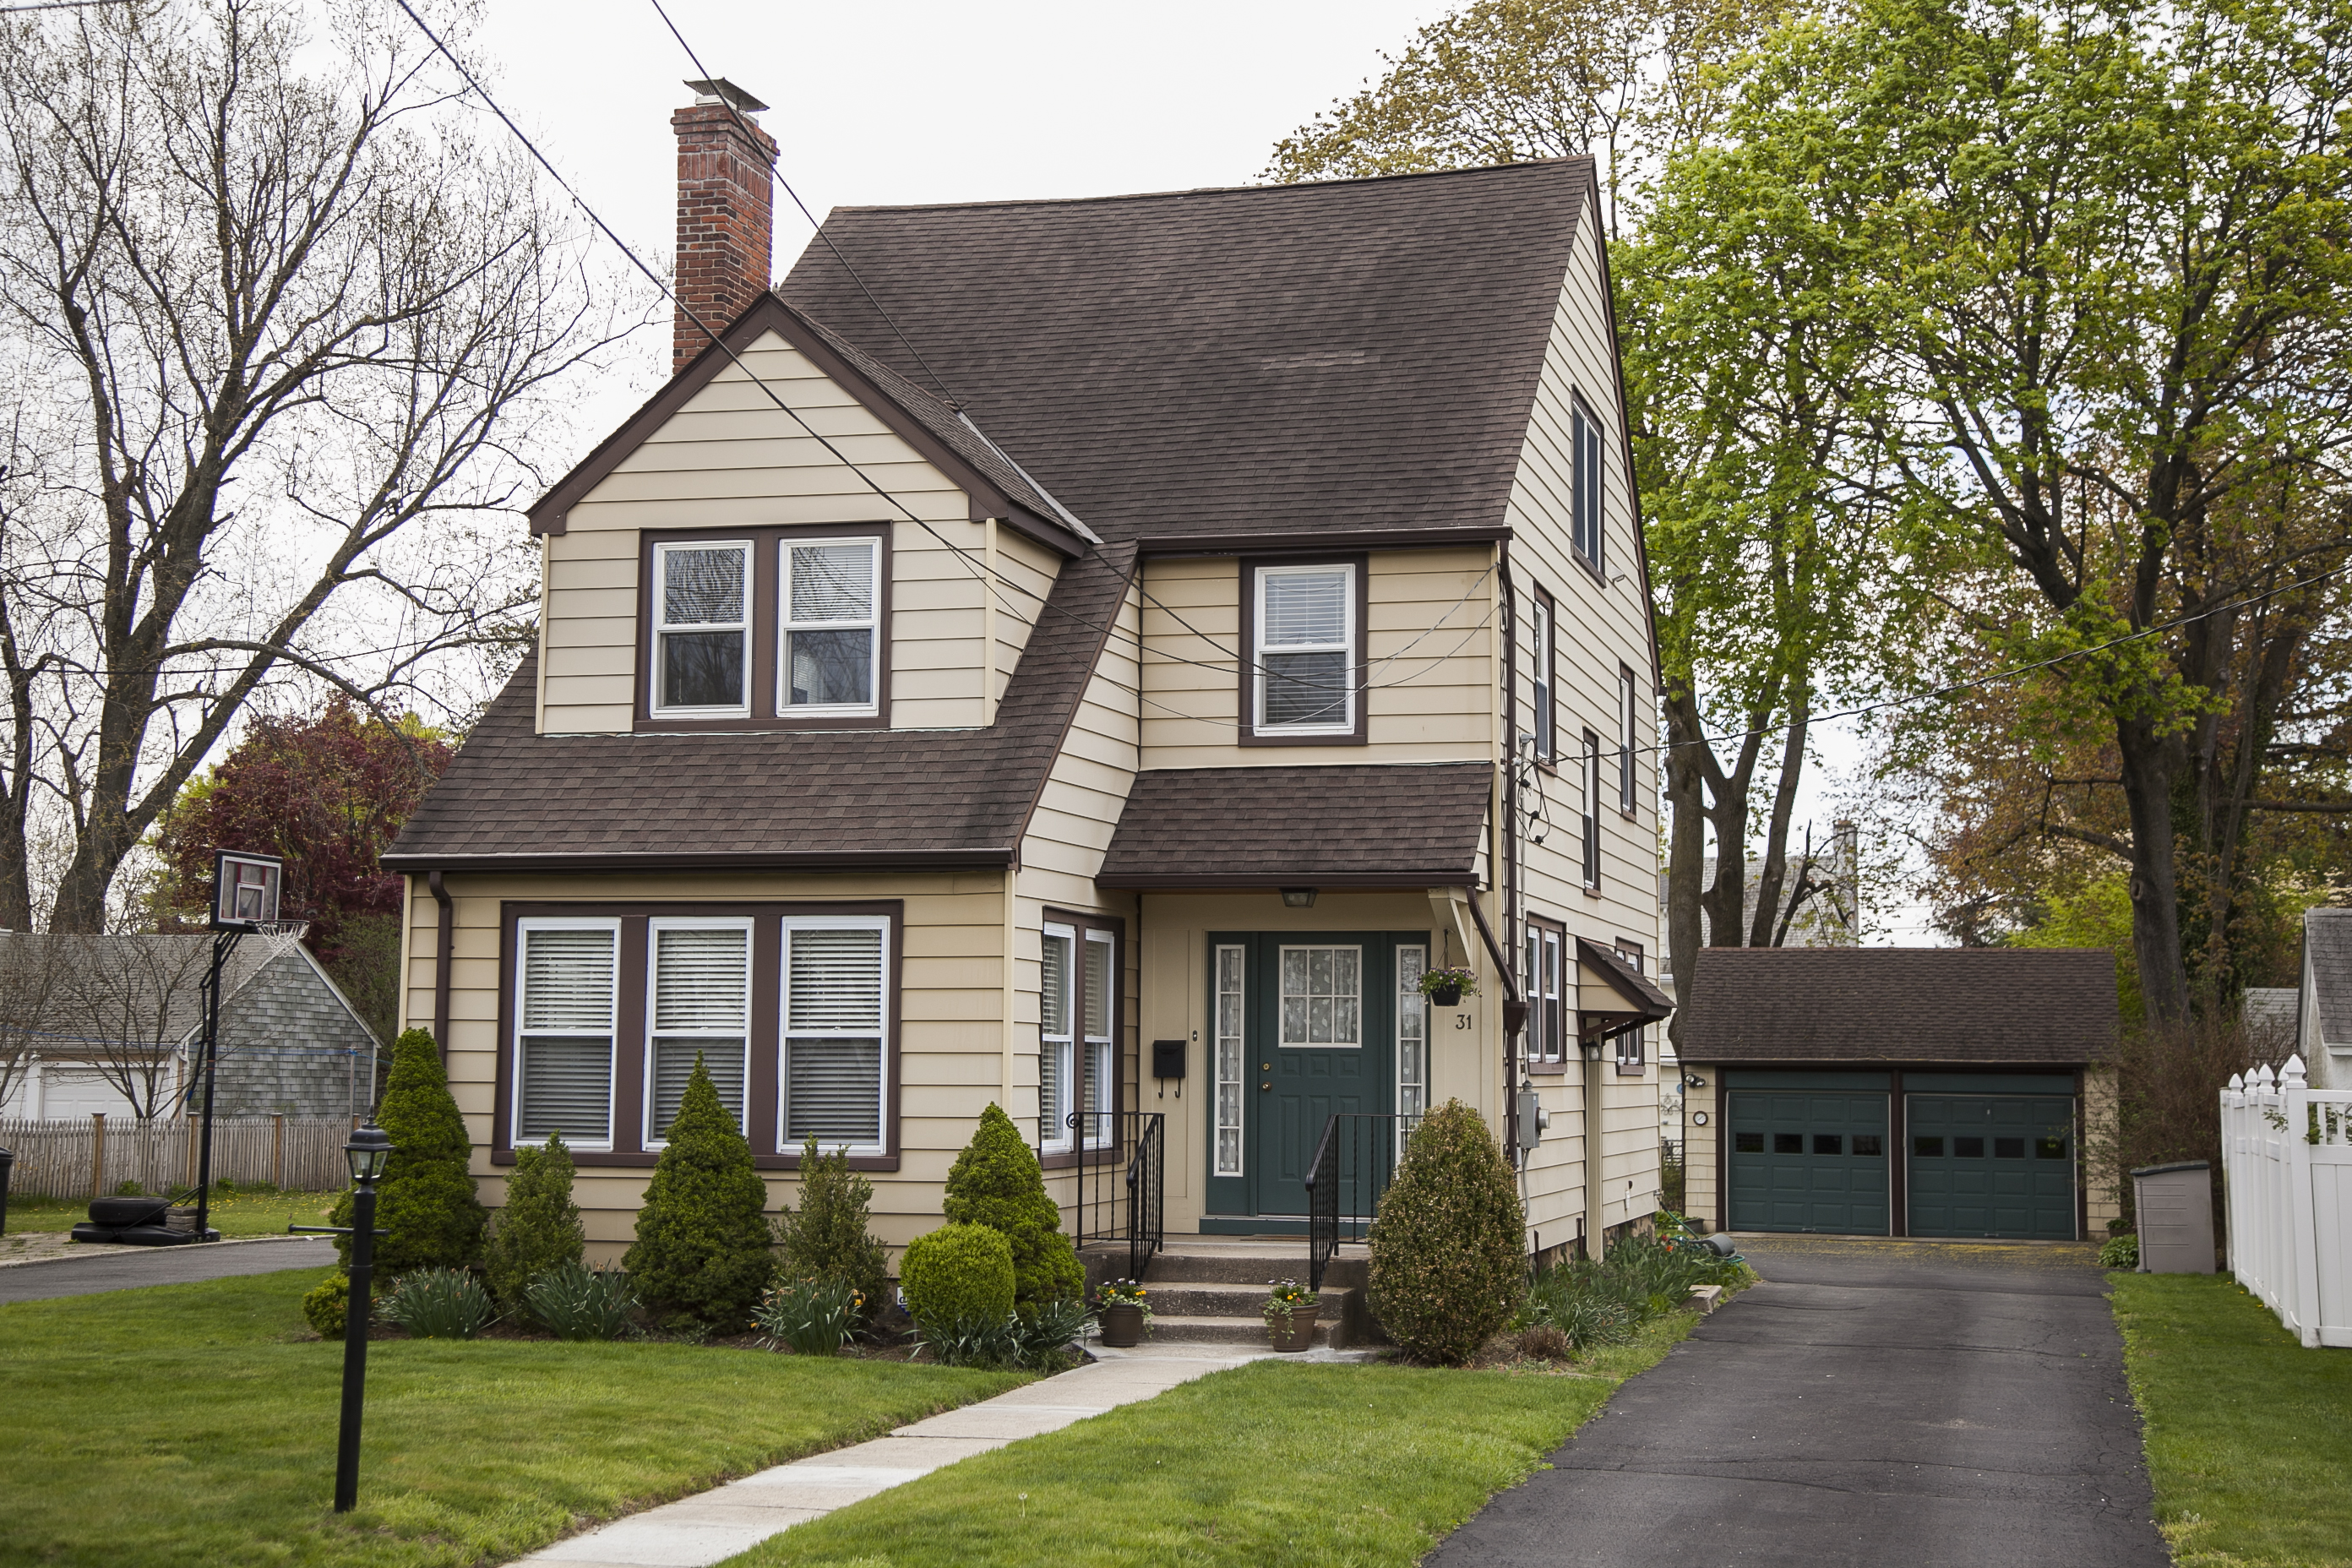 Single Family Home for Sale at 31 Hobart Avenue Port Chester, New York, 10573 United States